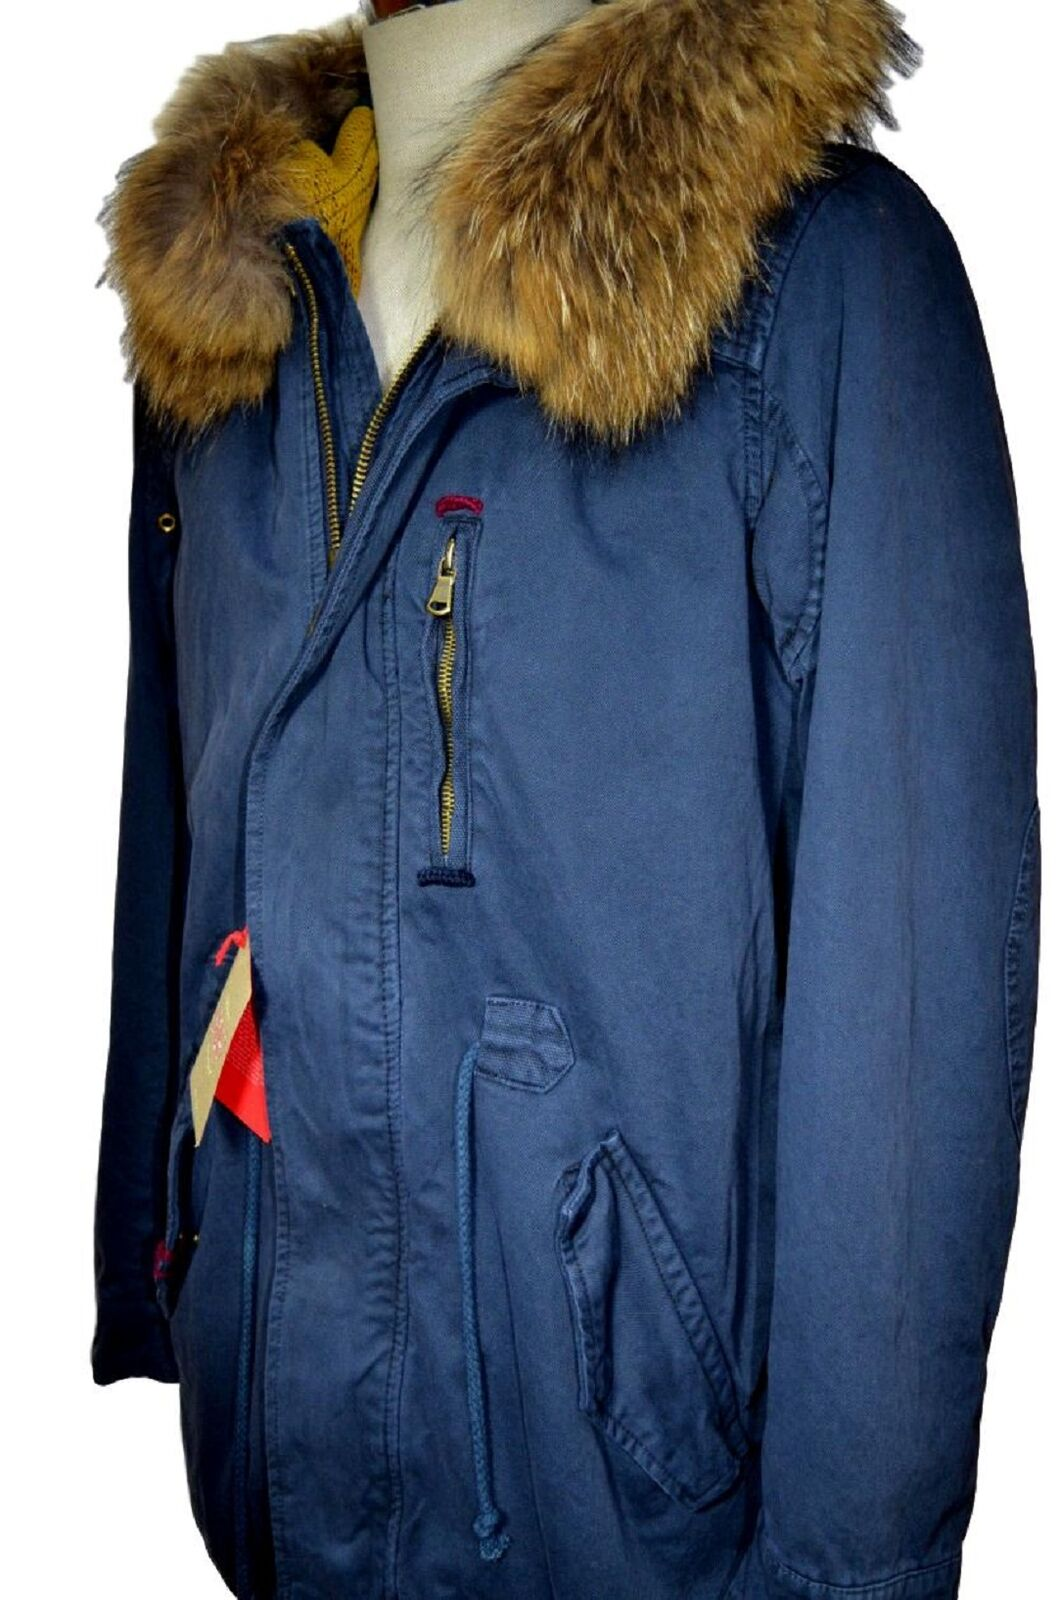 Bob Parka Mens Mod. Cheope bluee Internal  Removable Size L  shop online